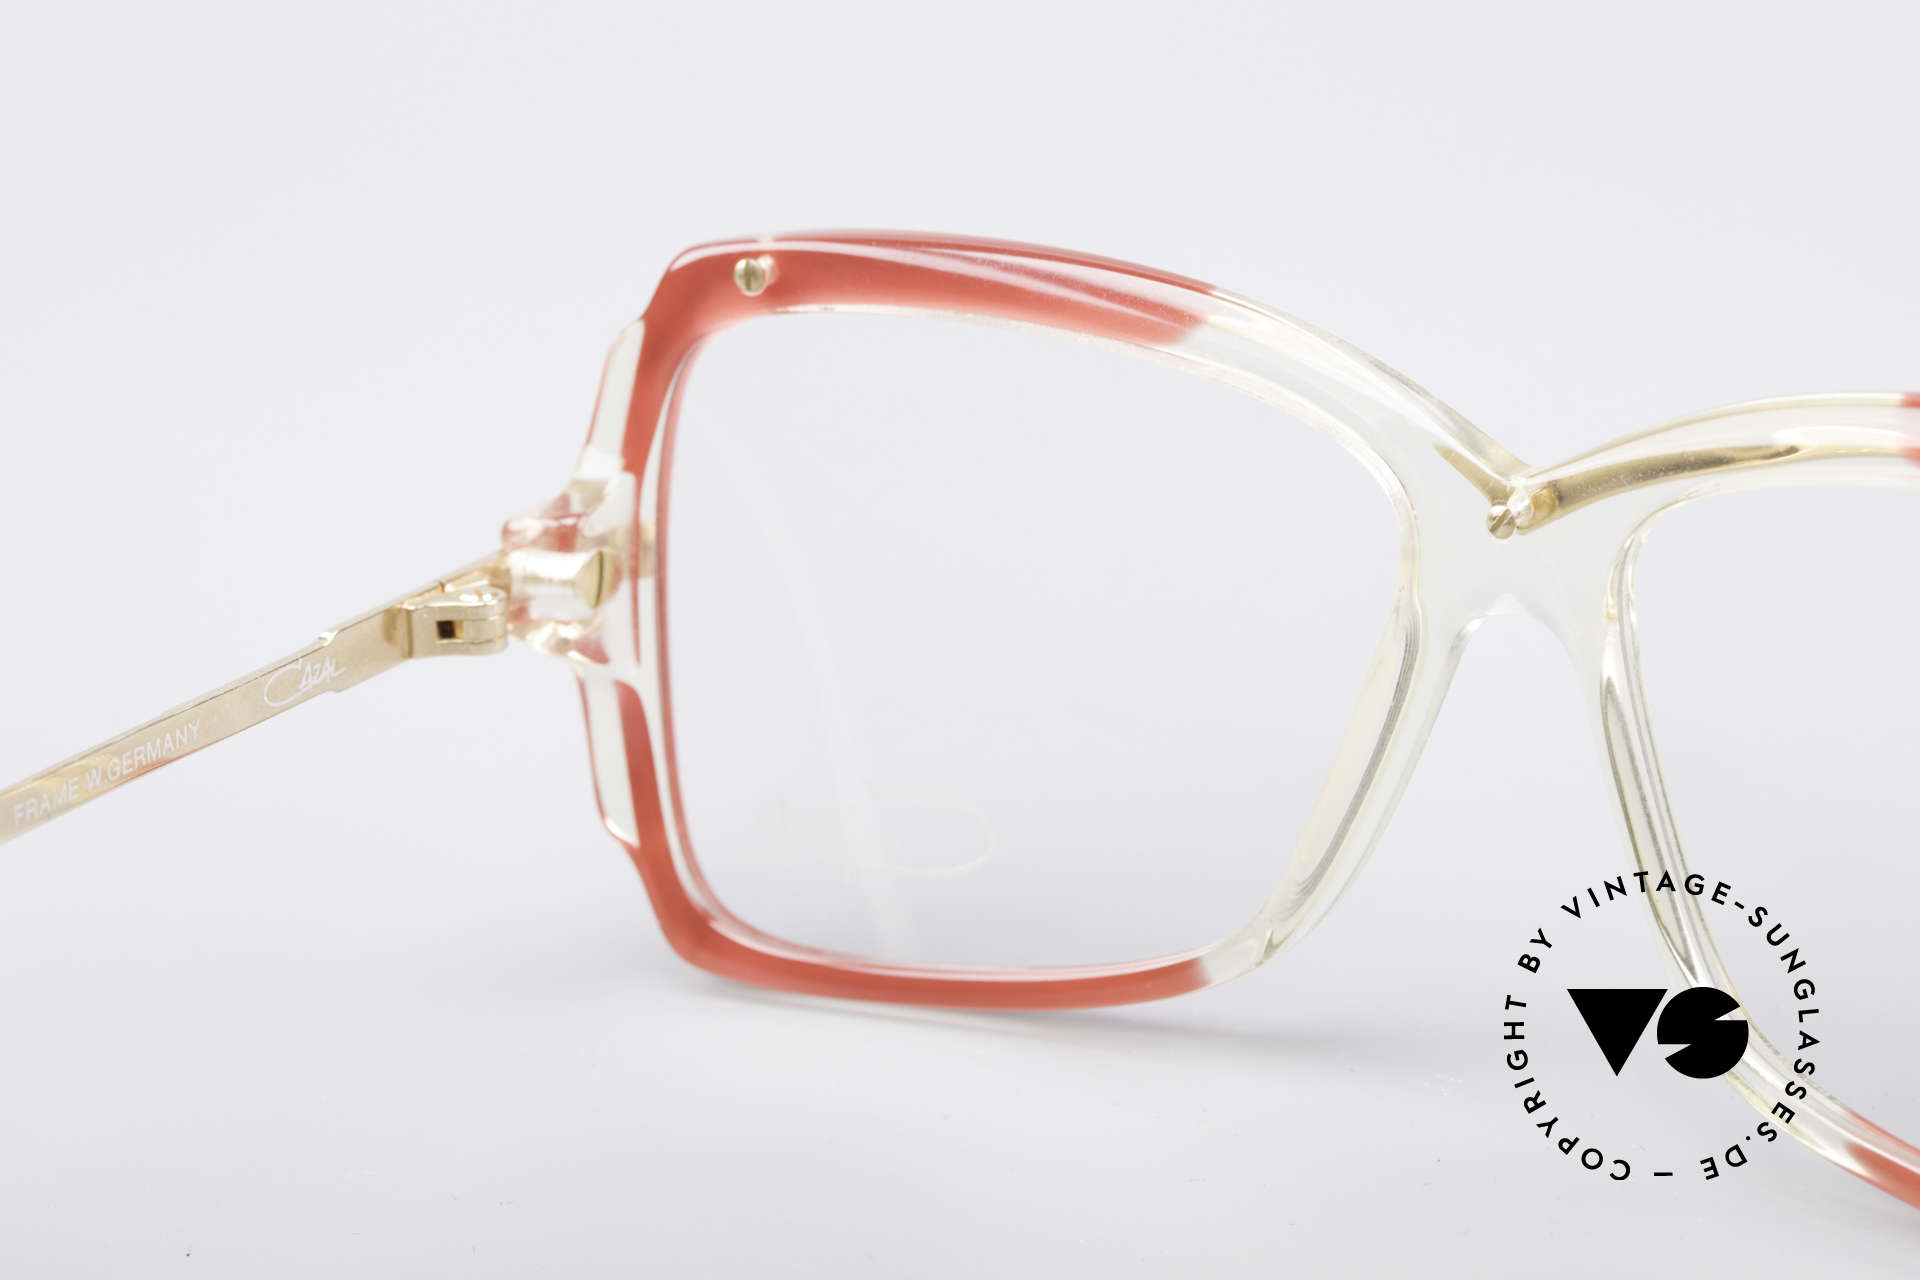 Cazal 177 80's Designer Glasses, the demo lenses can be replaced with prescriptions, Made for Women